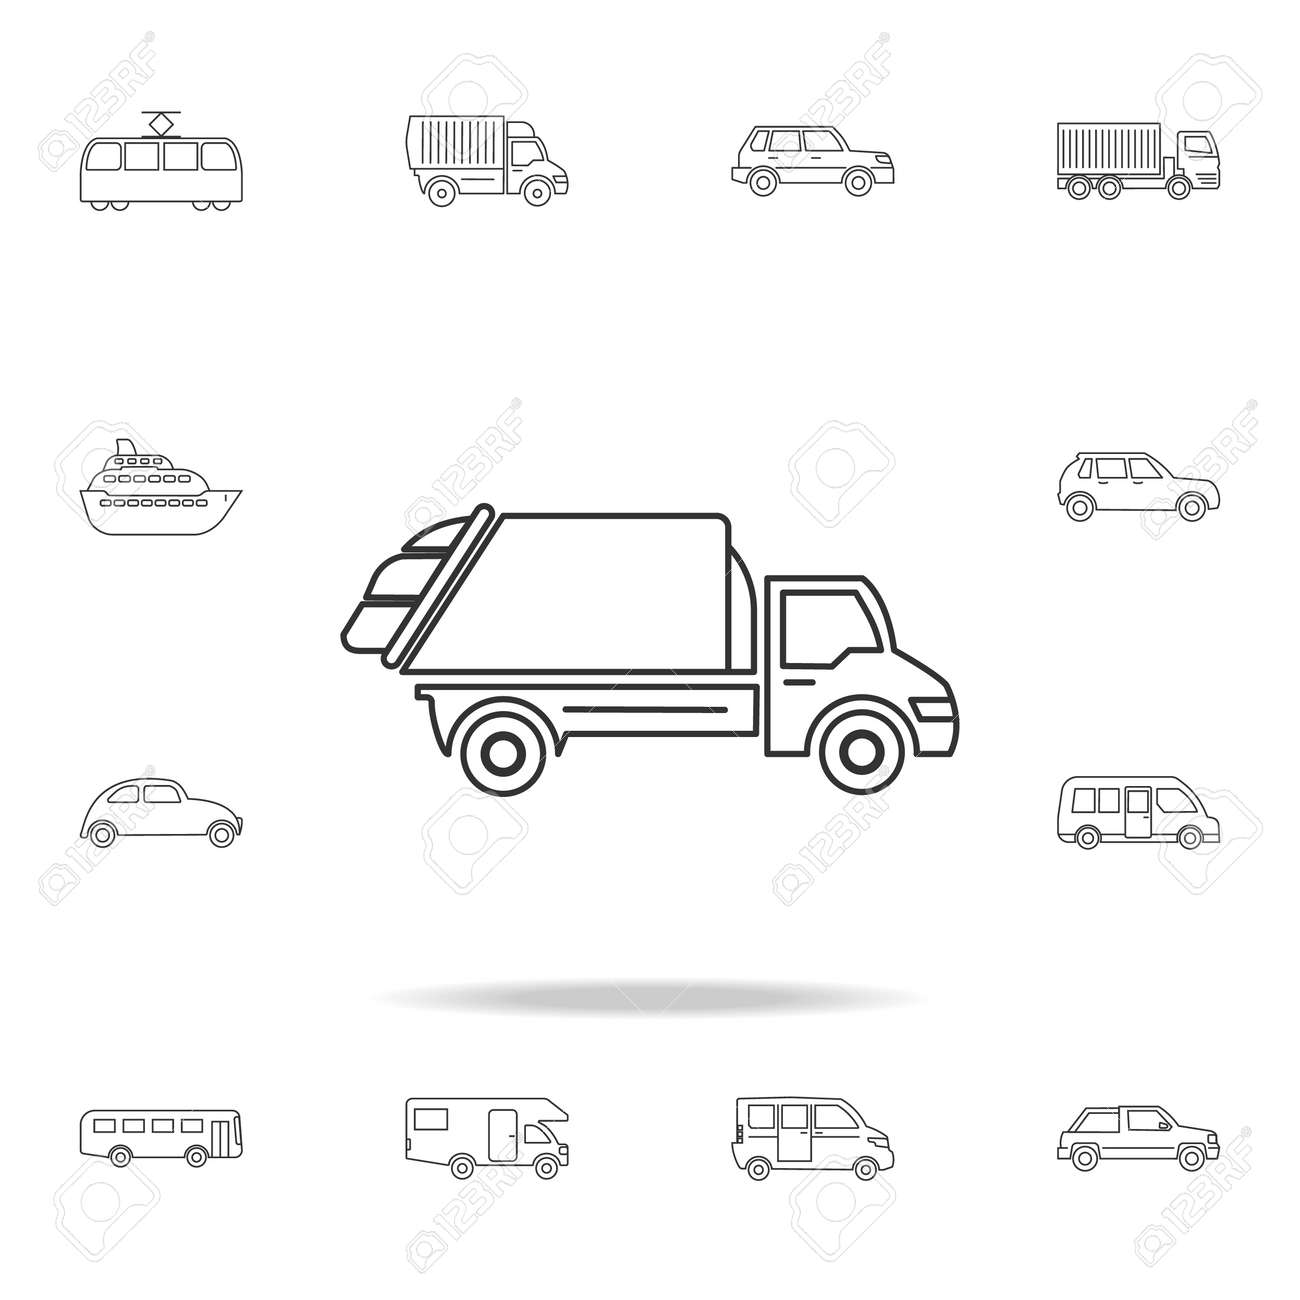 Garbage Truck Icon Detailed Set Of Transport Outline Icons Premium Quality Graphic Design